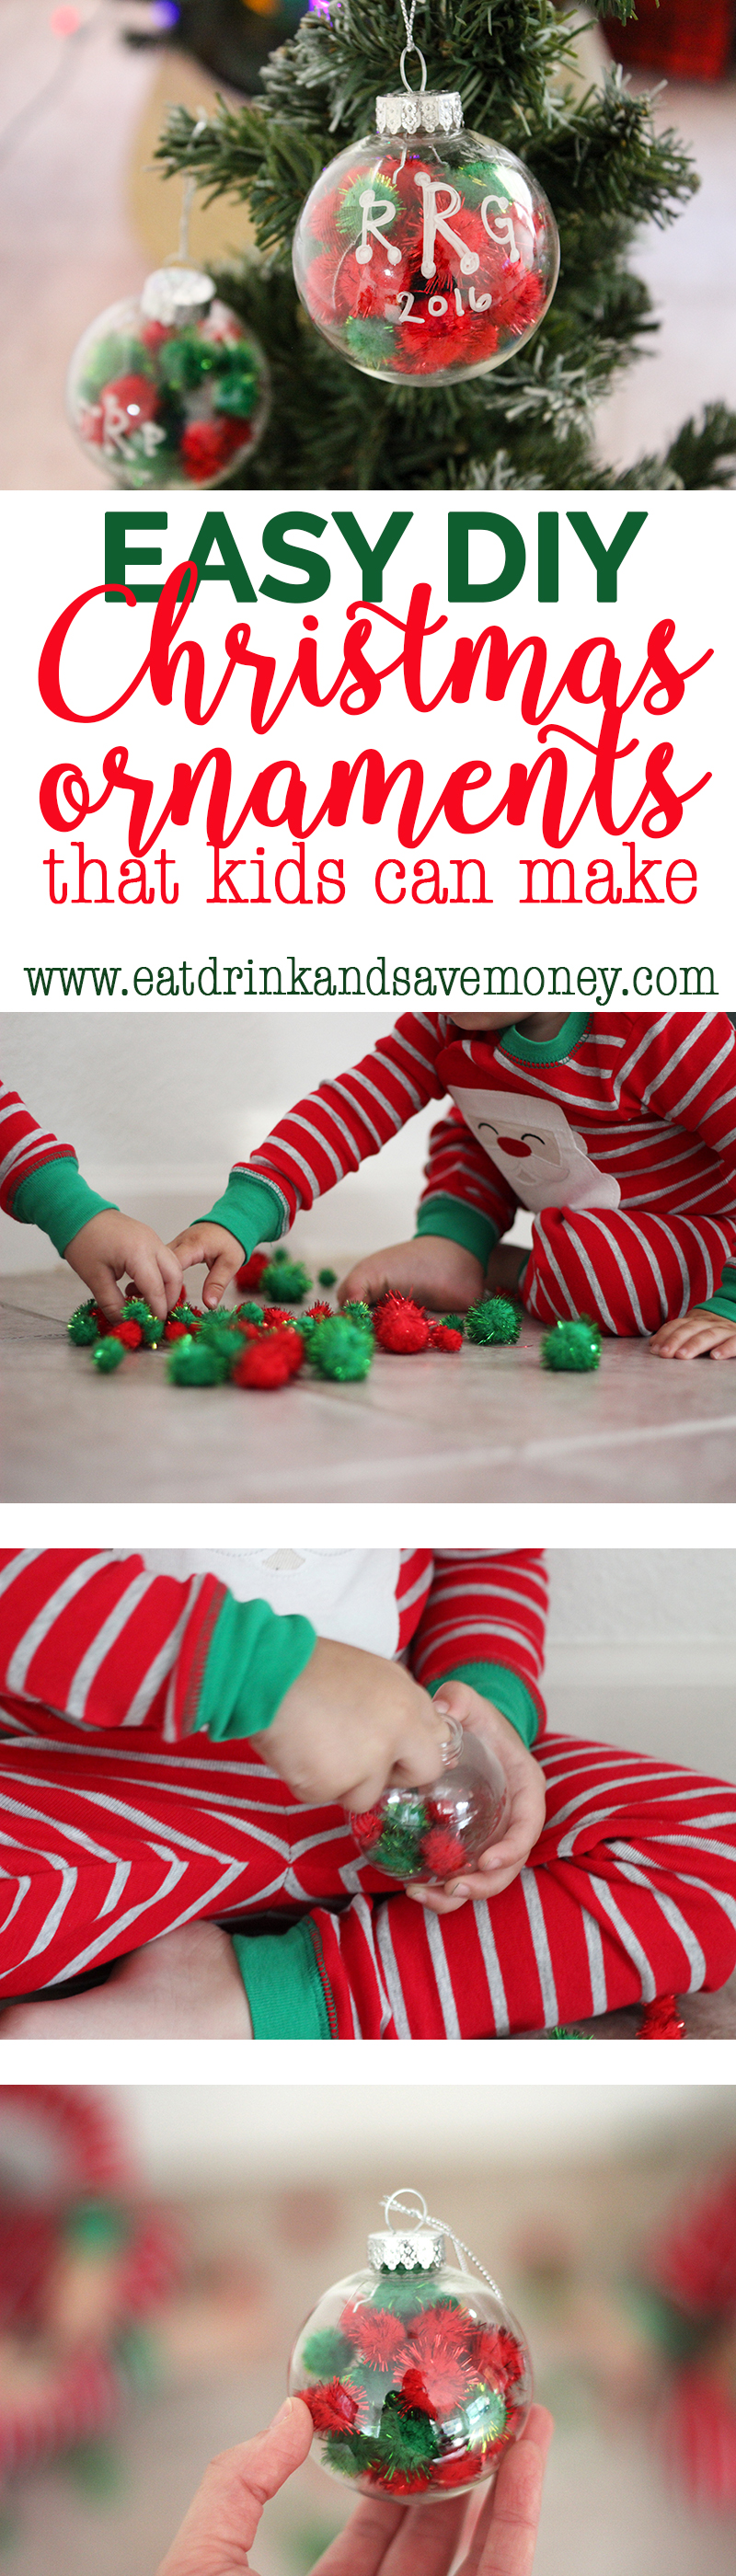 You've got to check out this easy DIY Christmas ornament that kids can make. These sensory ornaments are super easy and tons of fun to make with toddlers and preschoolers.